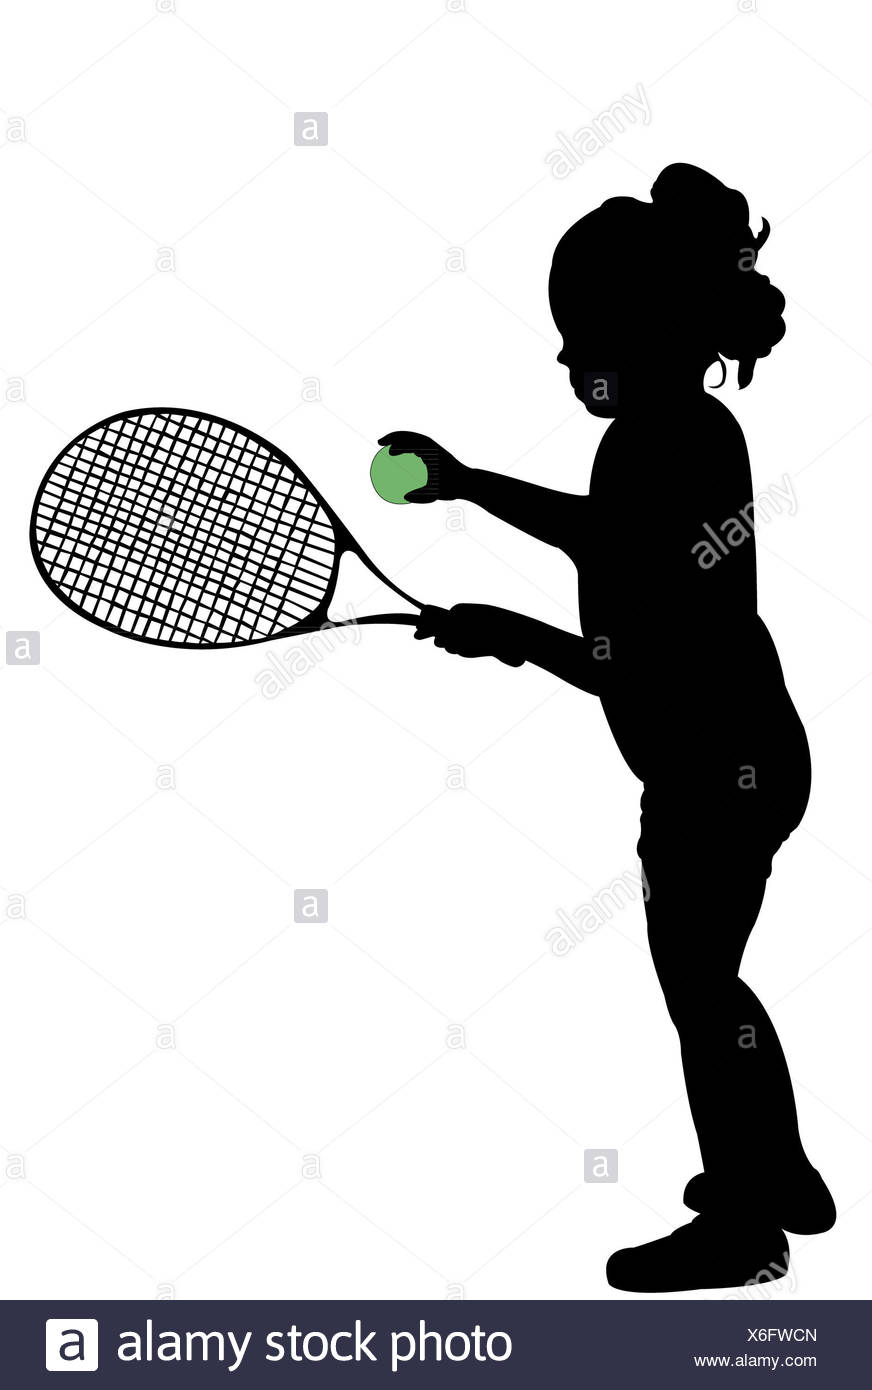 silhouette of child playing tennis - Stock Image